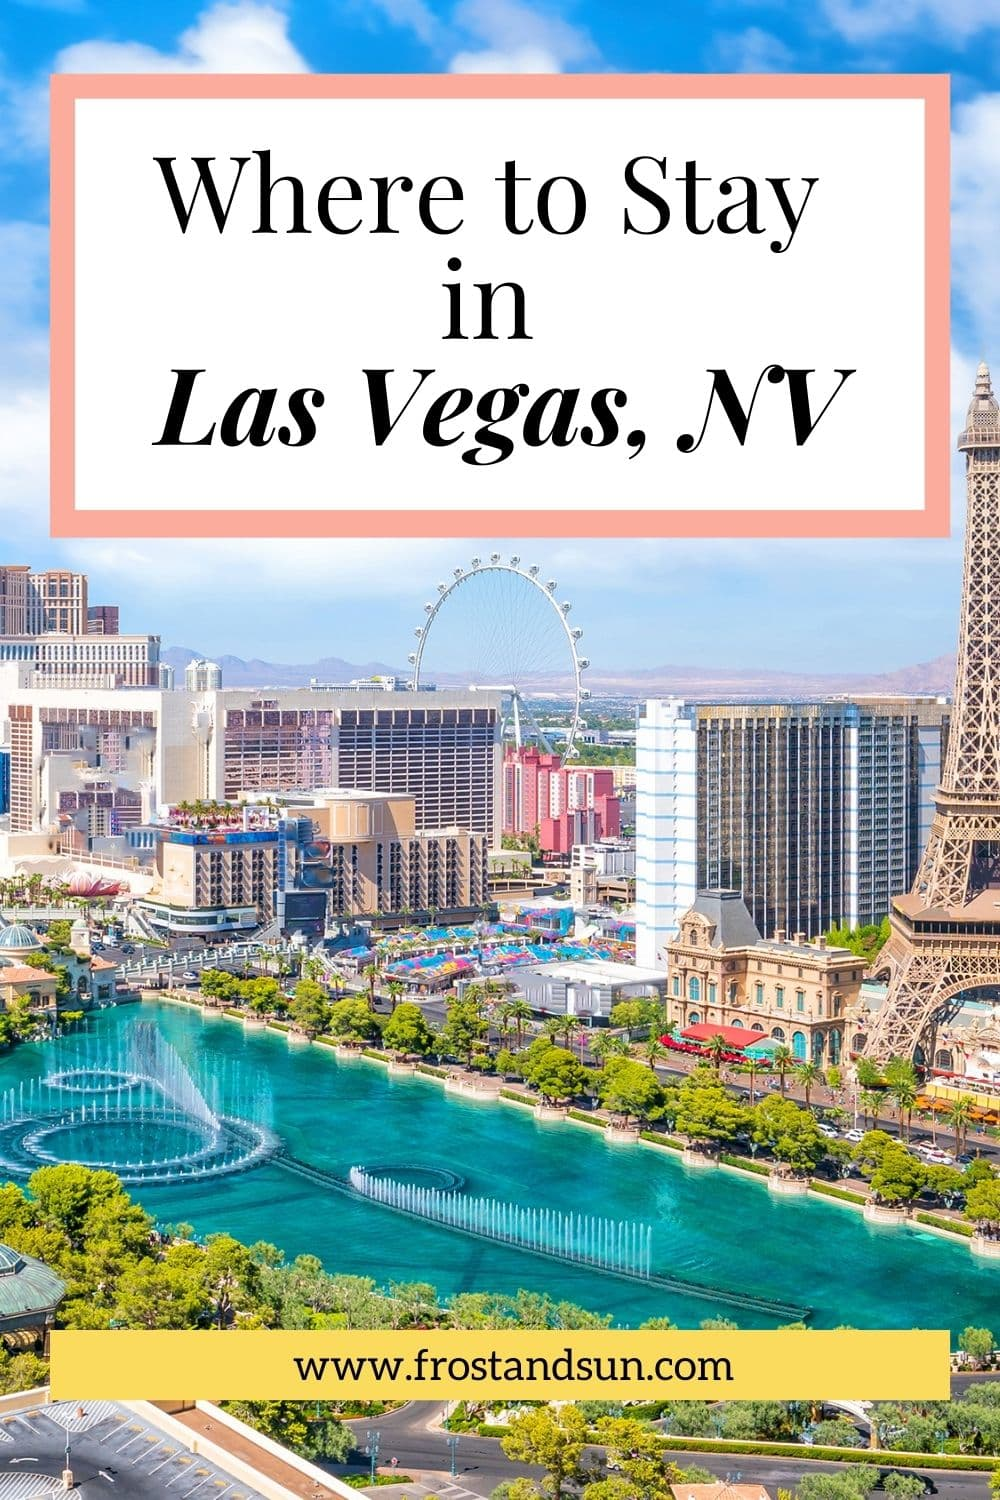 Where to Stay in Sin City: 10 Best Hotels in Las Vegas